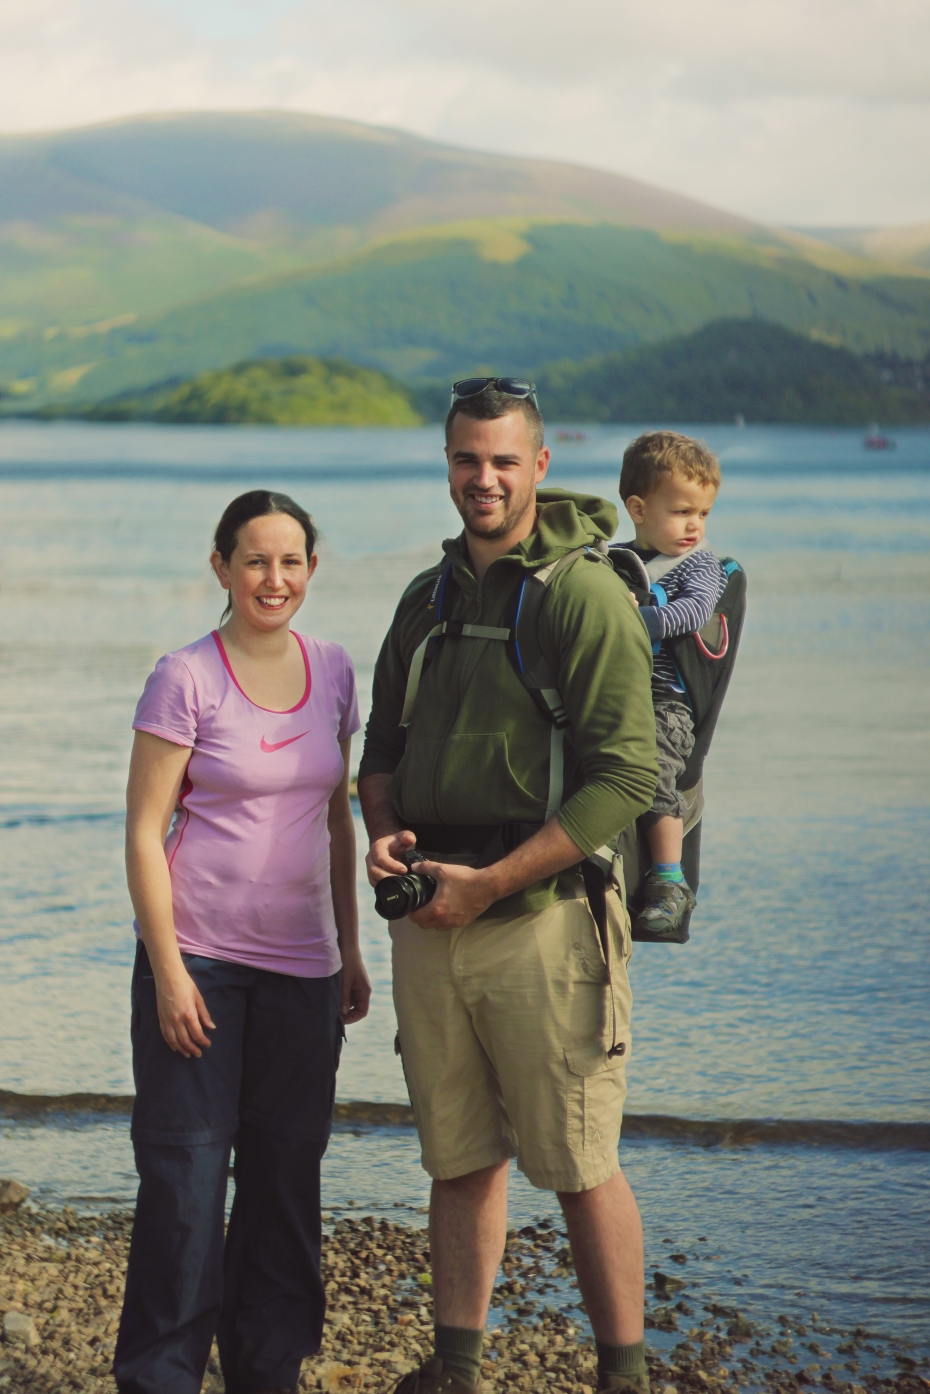 Our walks this year have been mainly family friendly. Photo courtesy of Viewranger